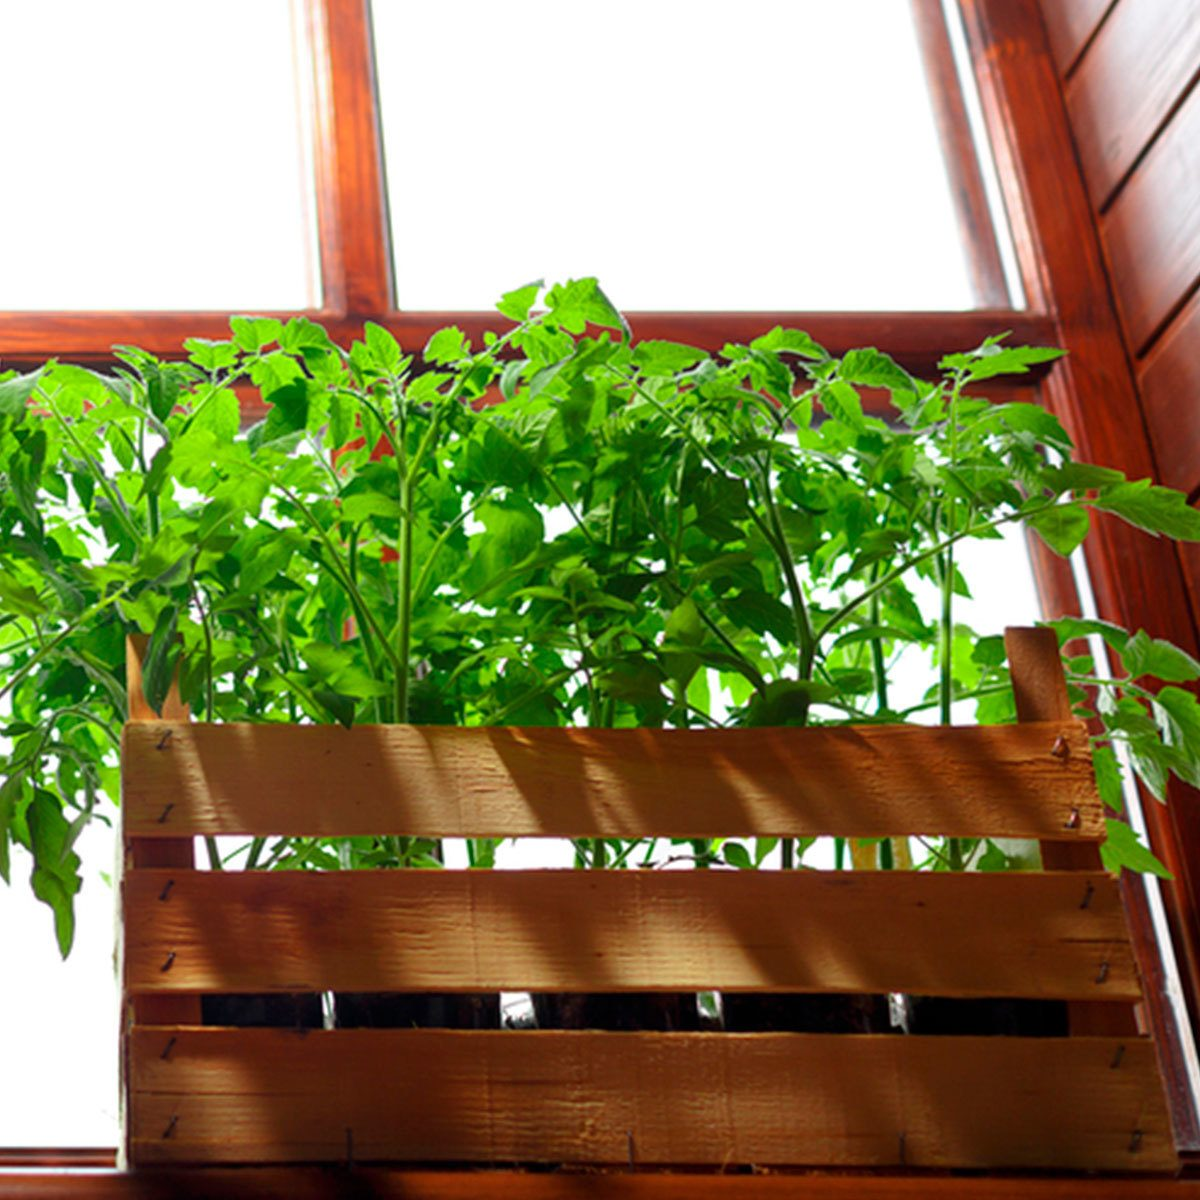 grow tomatoes in a window box